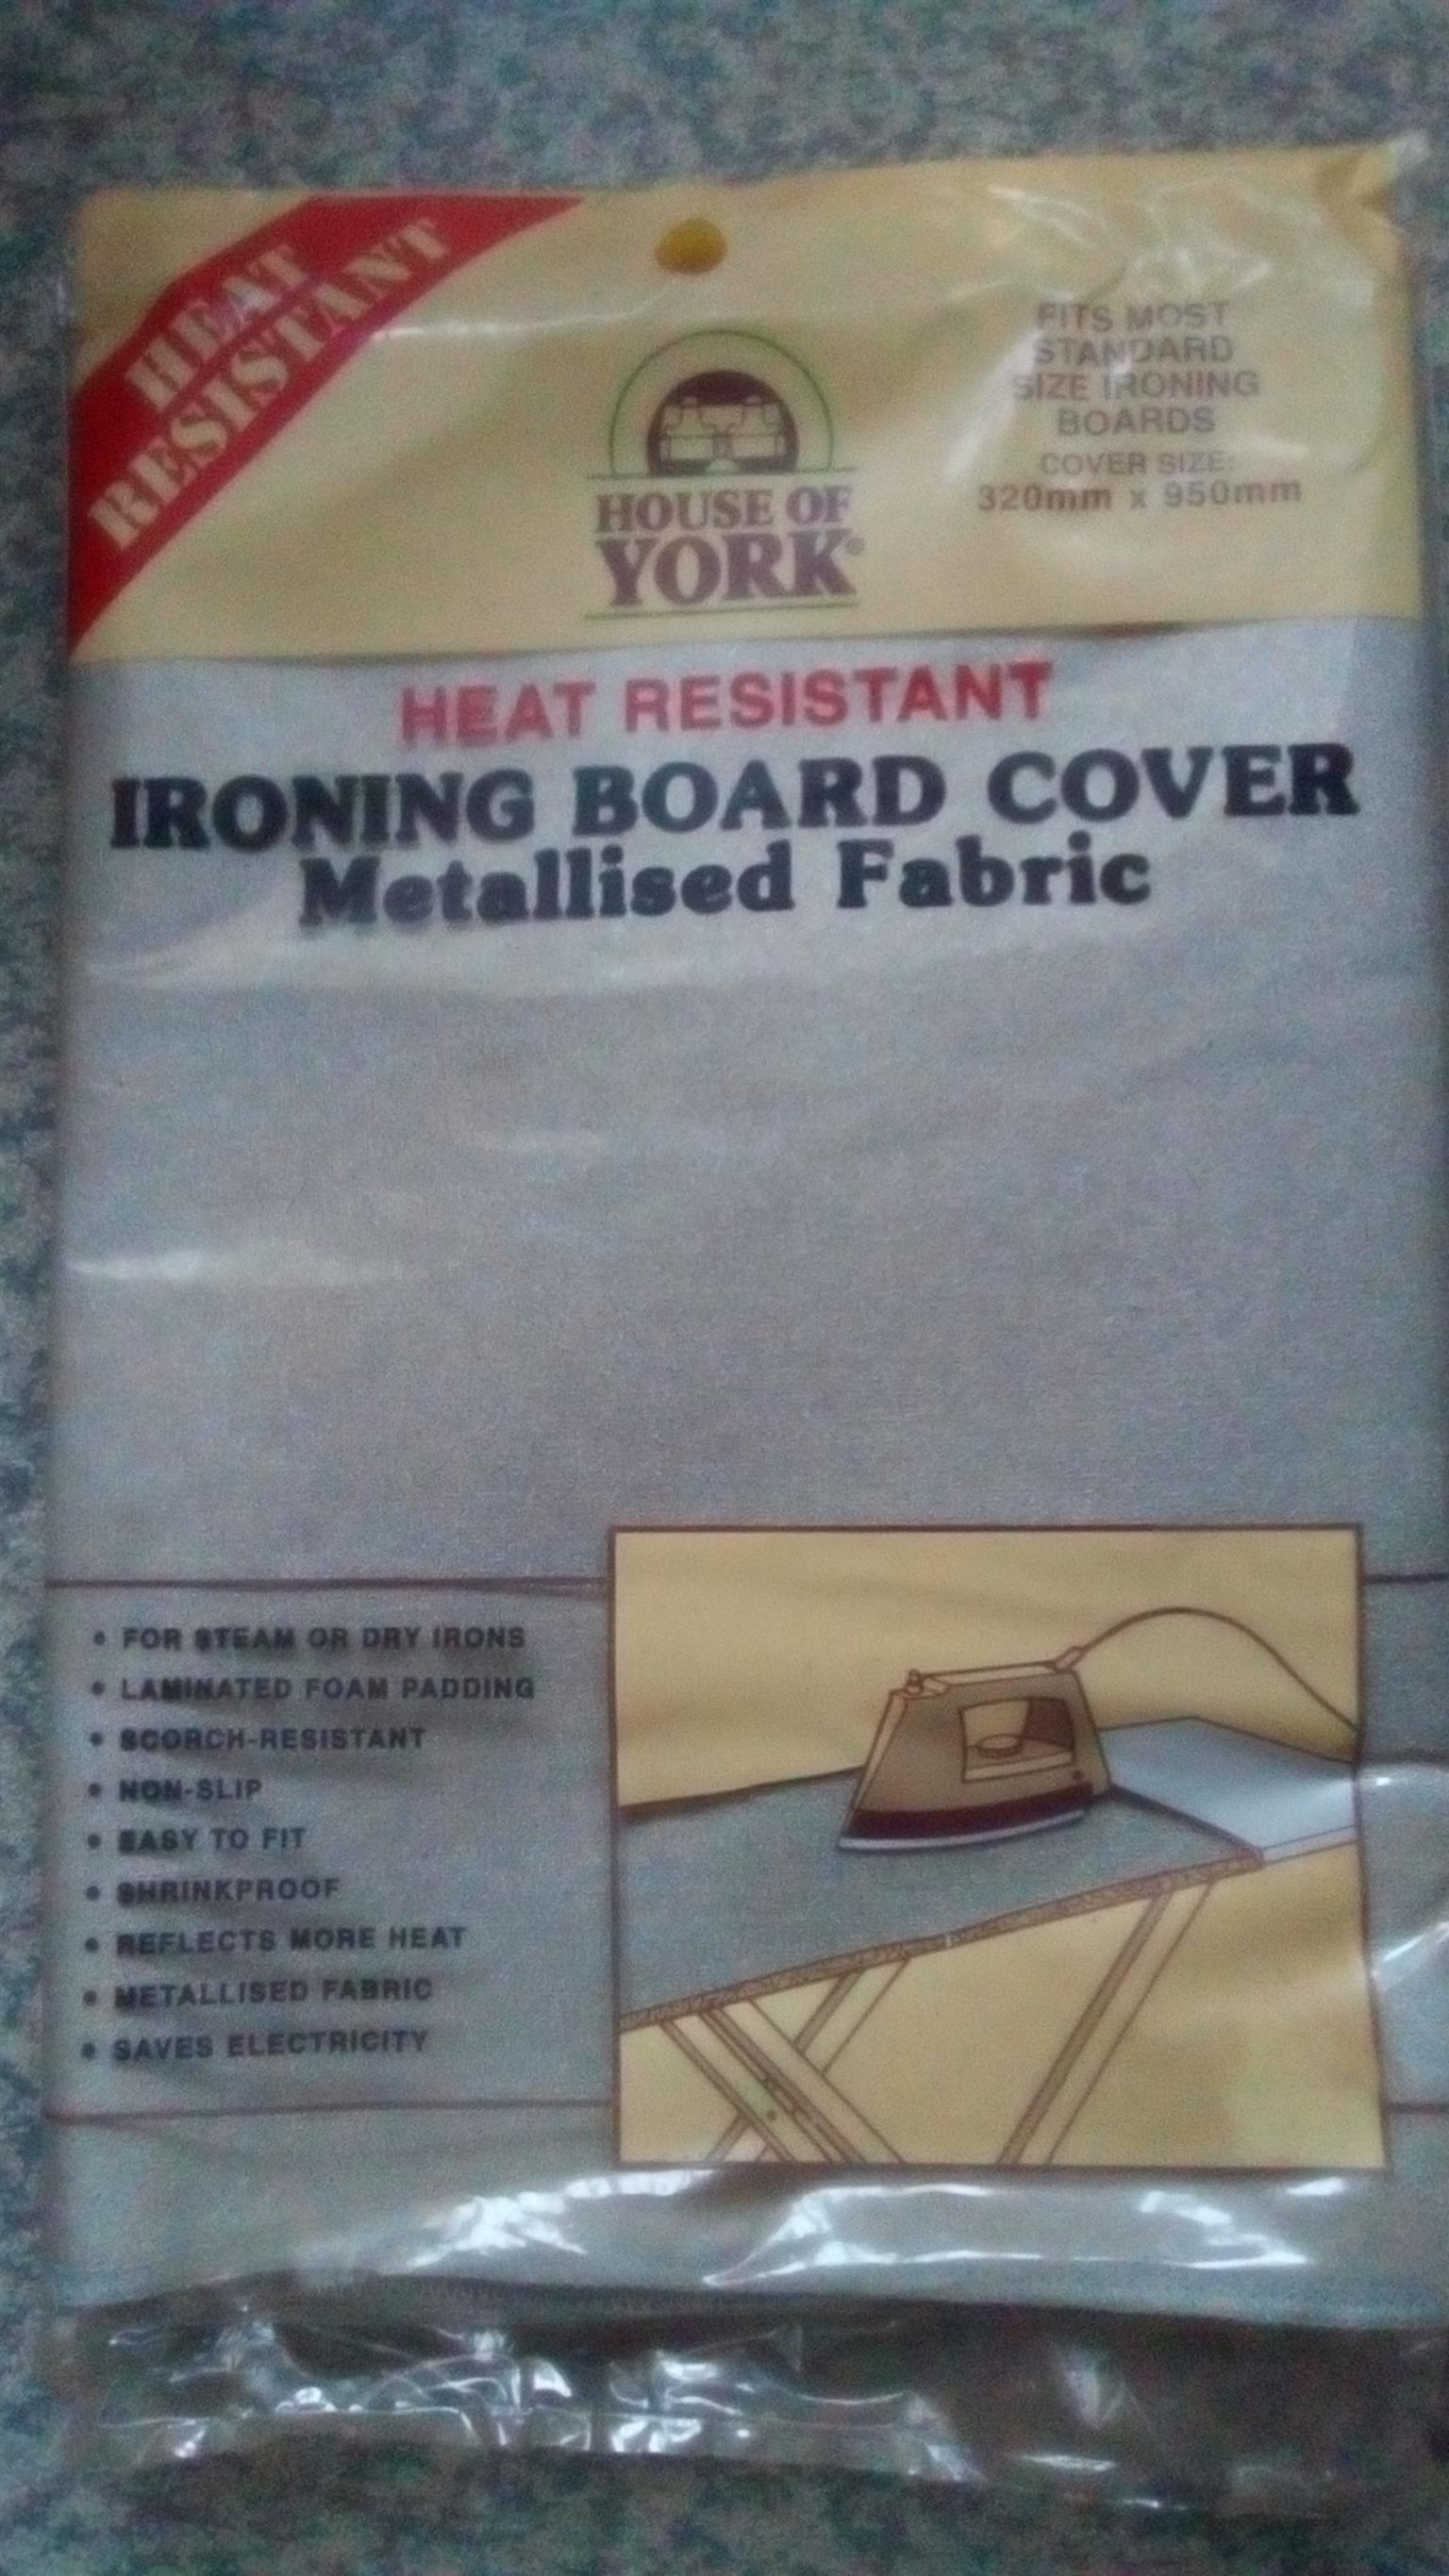 House of York - Ironing board cover - Metallised fabric x 2